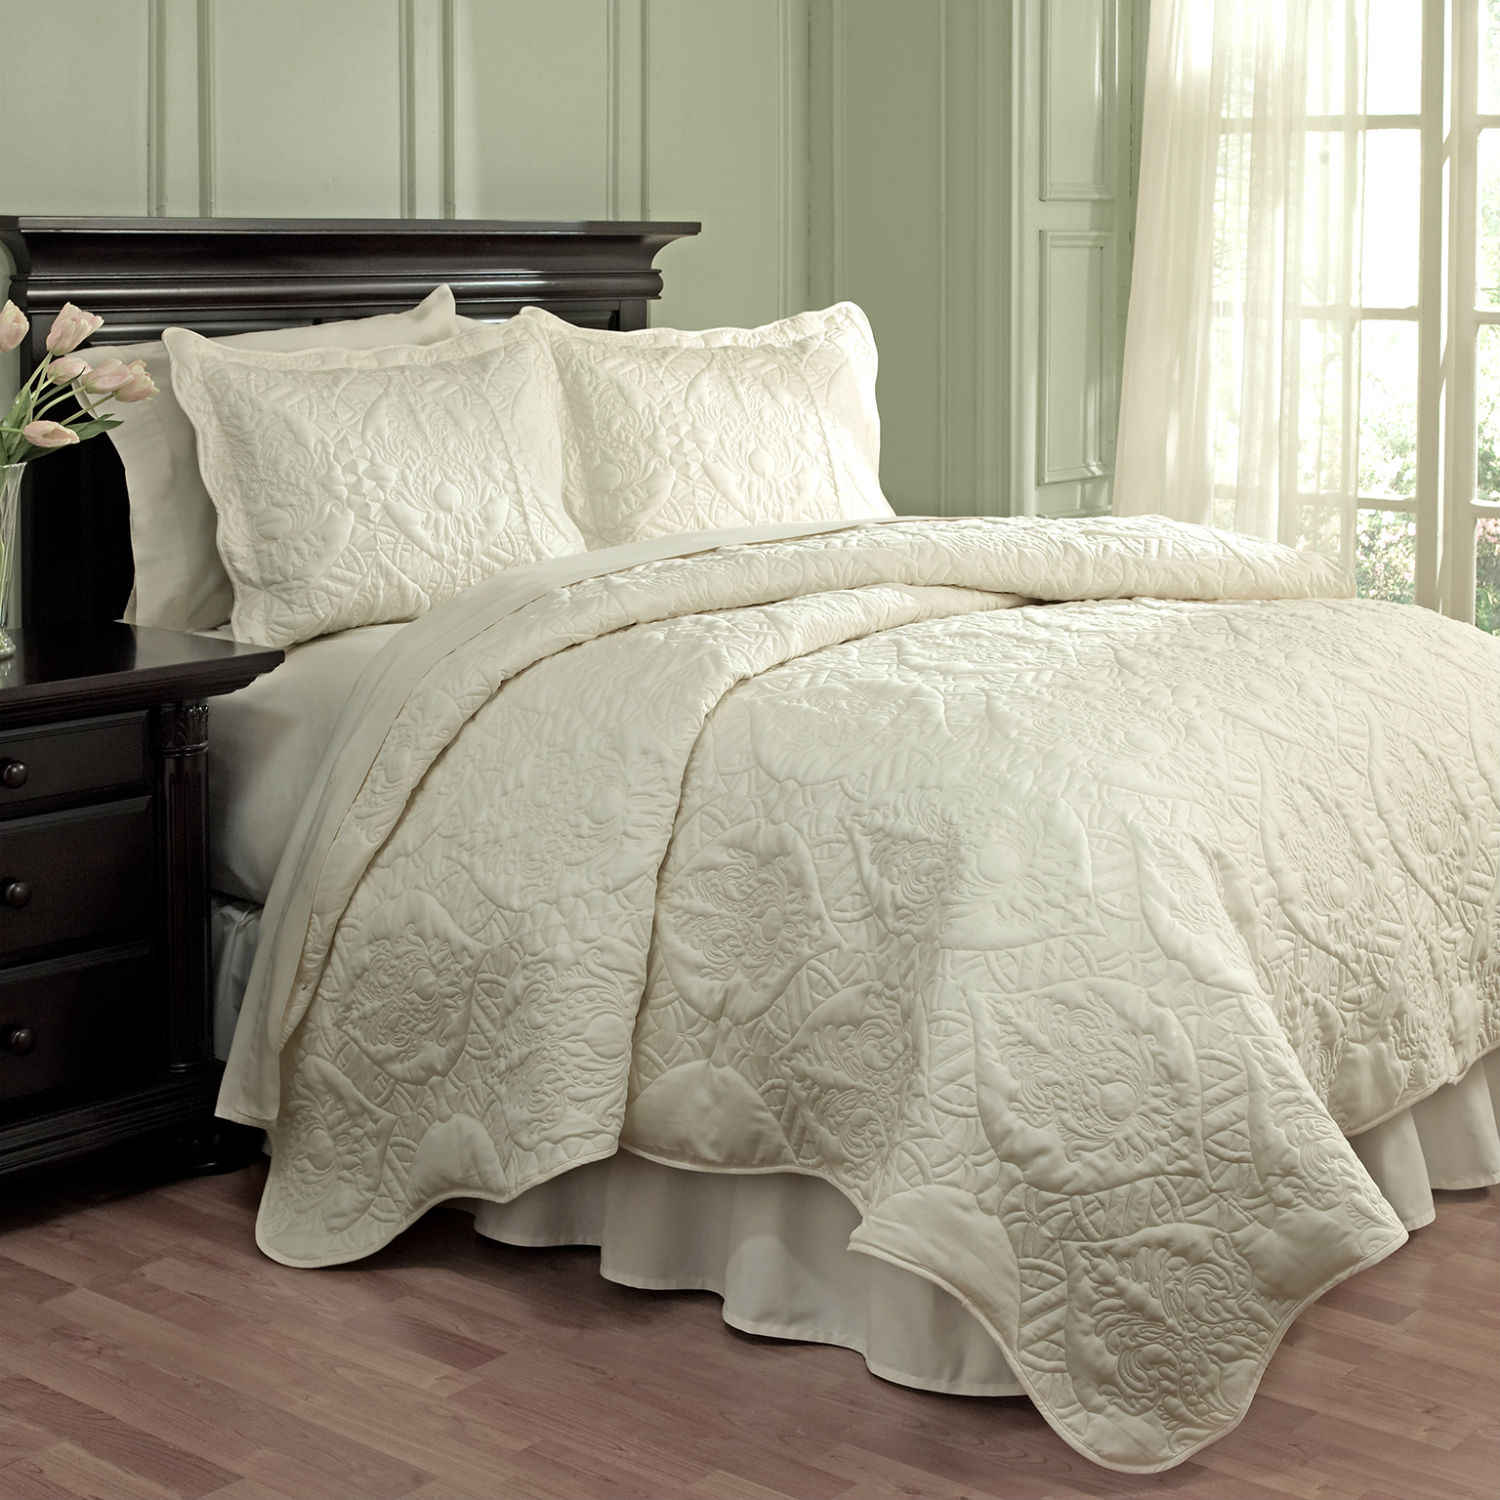 Scalloped Bedding Solid Color Matelasse Bedspreads Pair